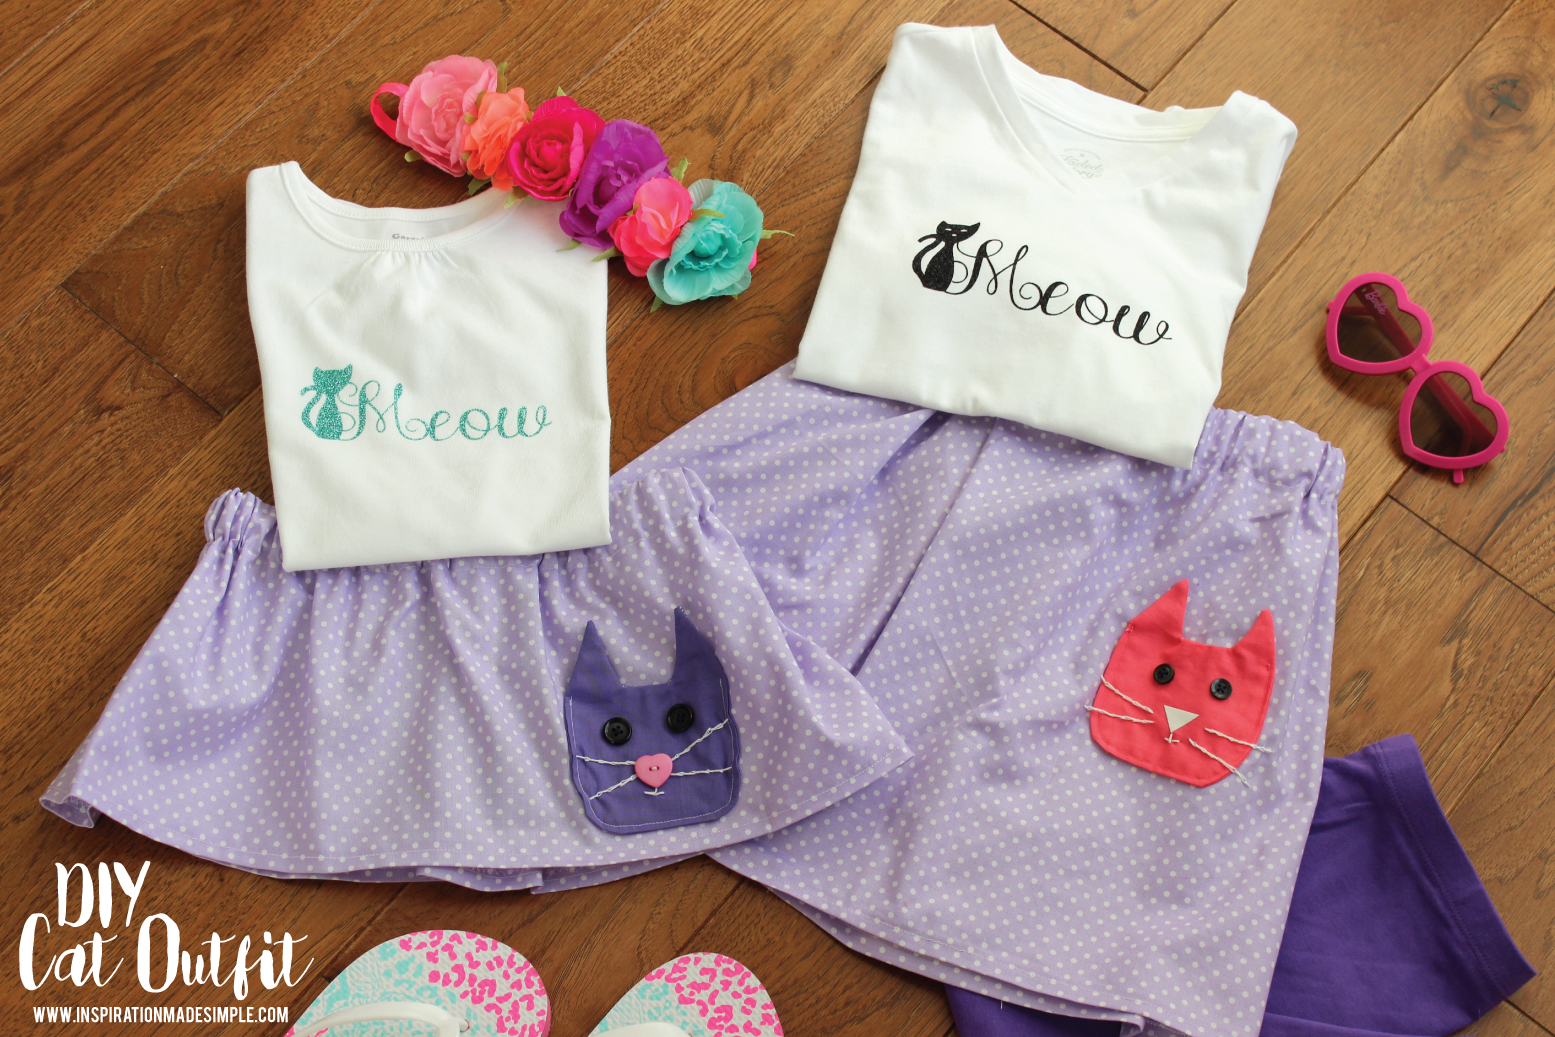 DIY Cat Outfit for Little Girls